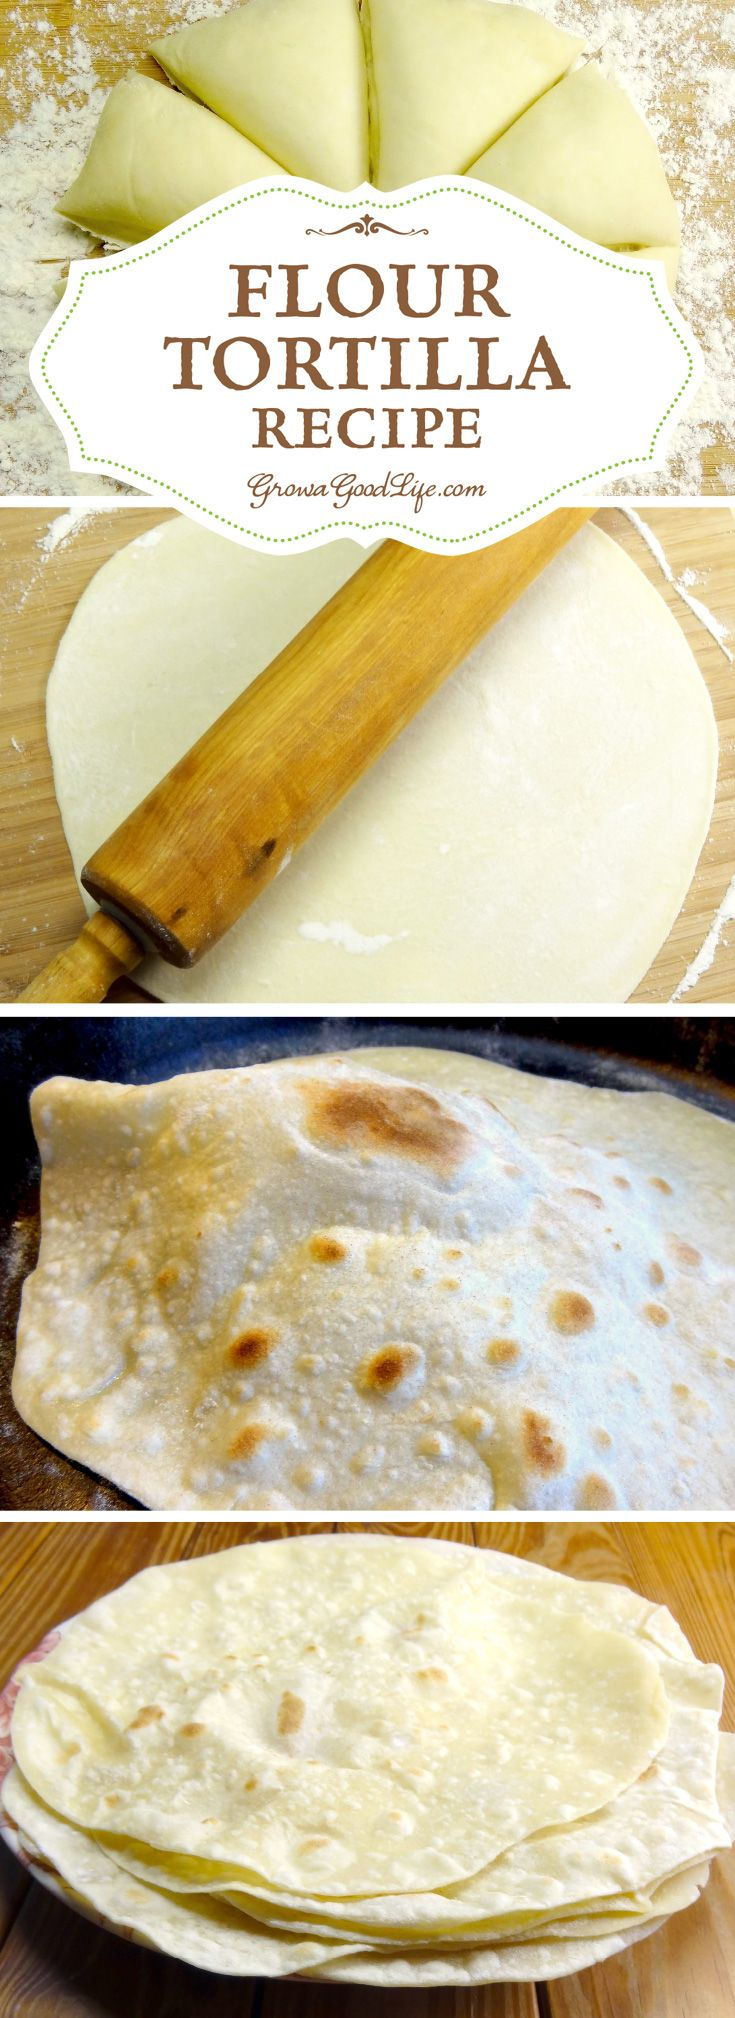 You need just four basic ingredients to make this flour tortilla recipe. Making homemade tortillas is worth the extra effort because they do taste so much better than store bought tortillas with no additives. Try this simple homemade flour tortilla recipe and you will know exactly what ingredients you will be eating.